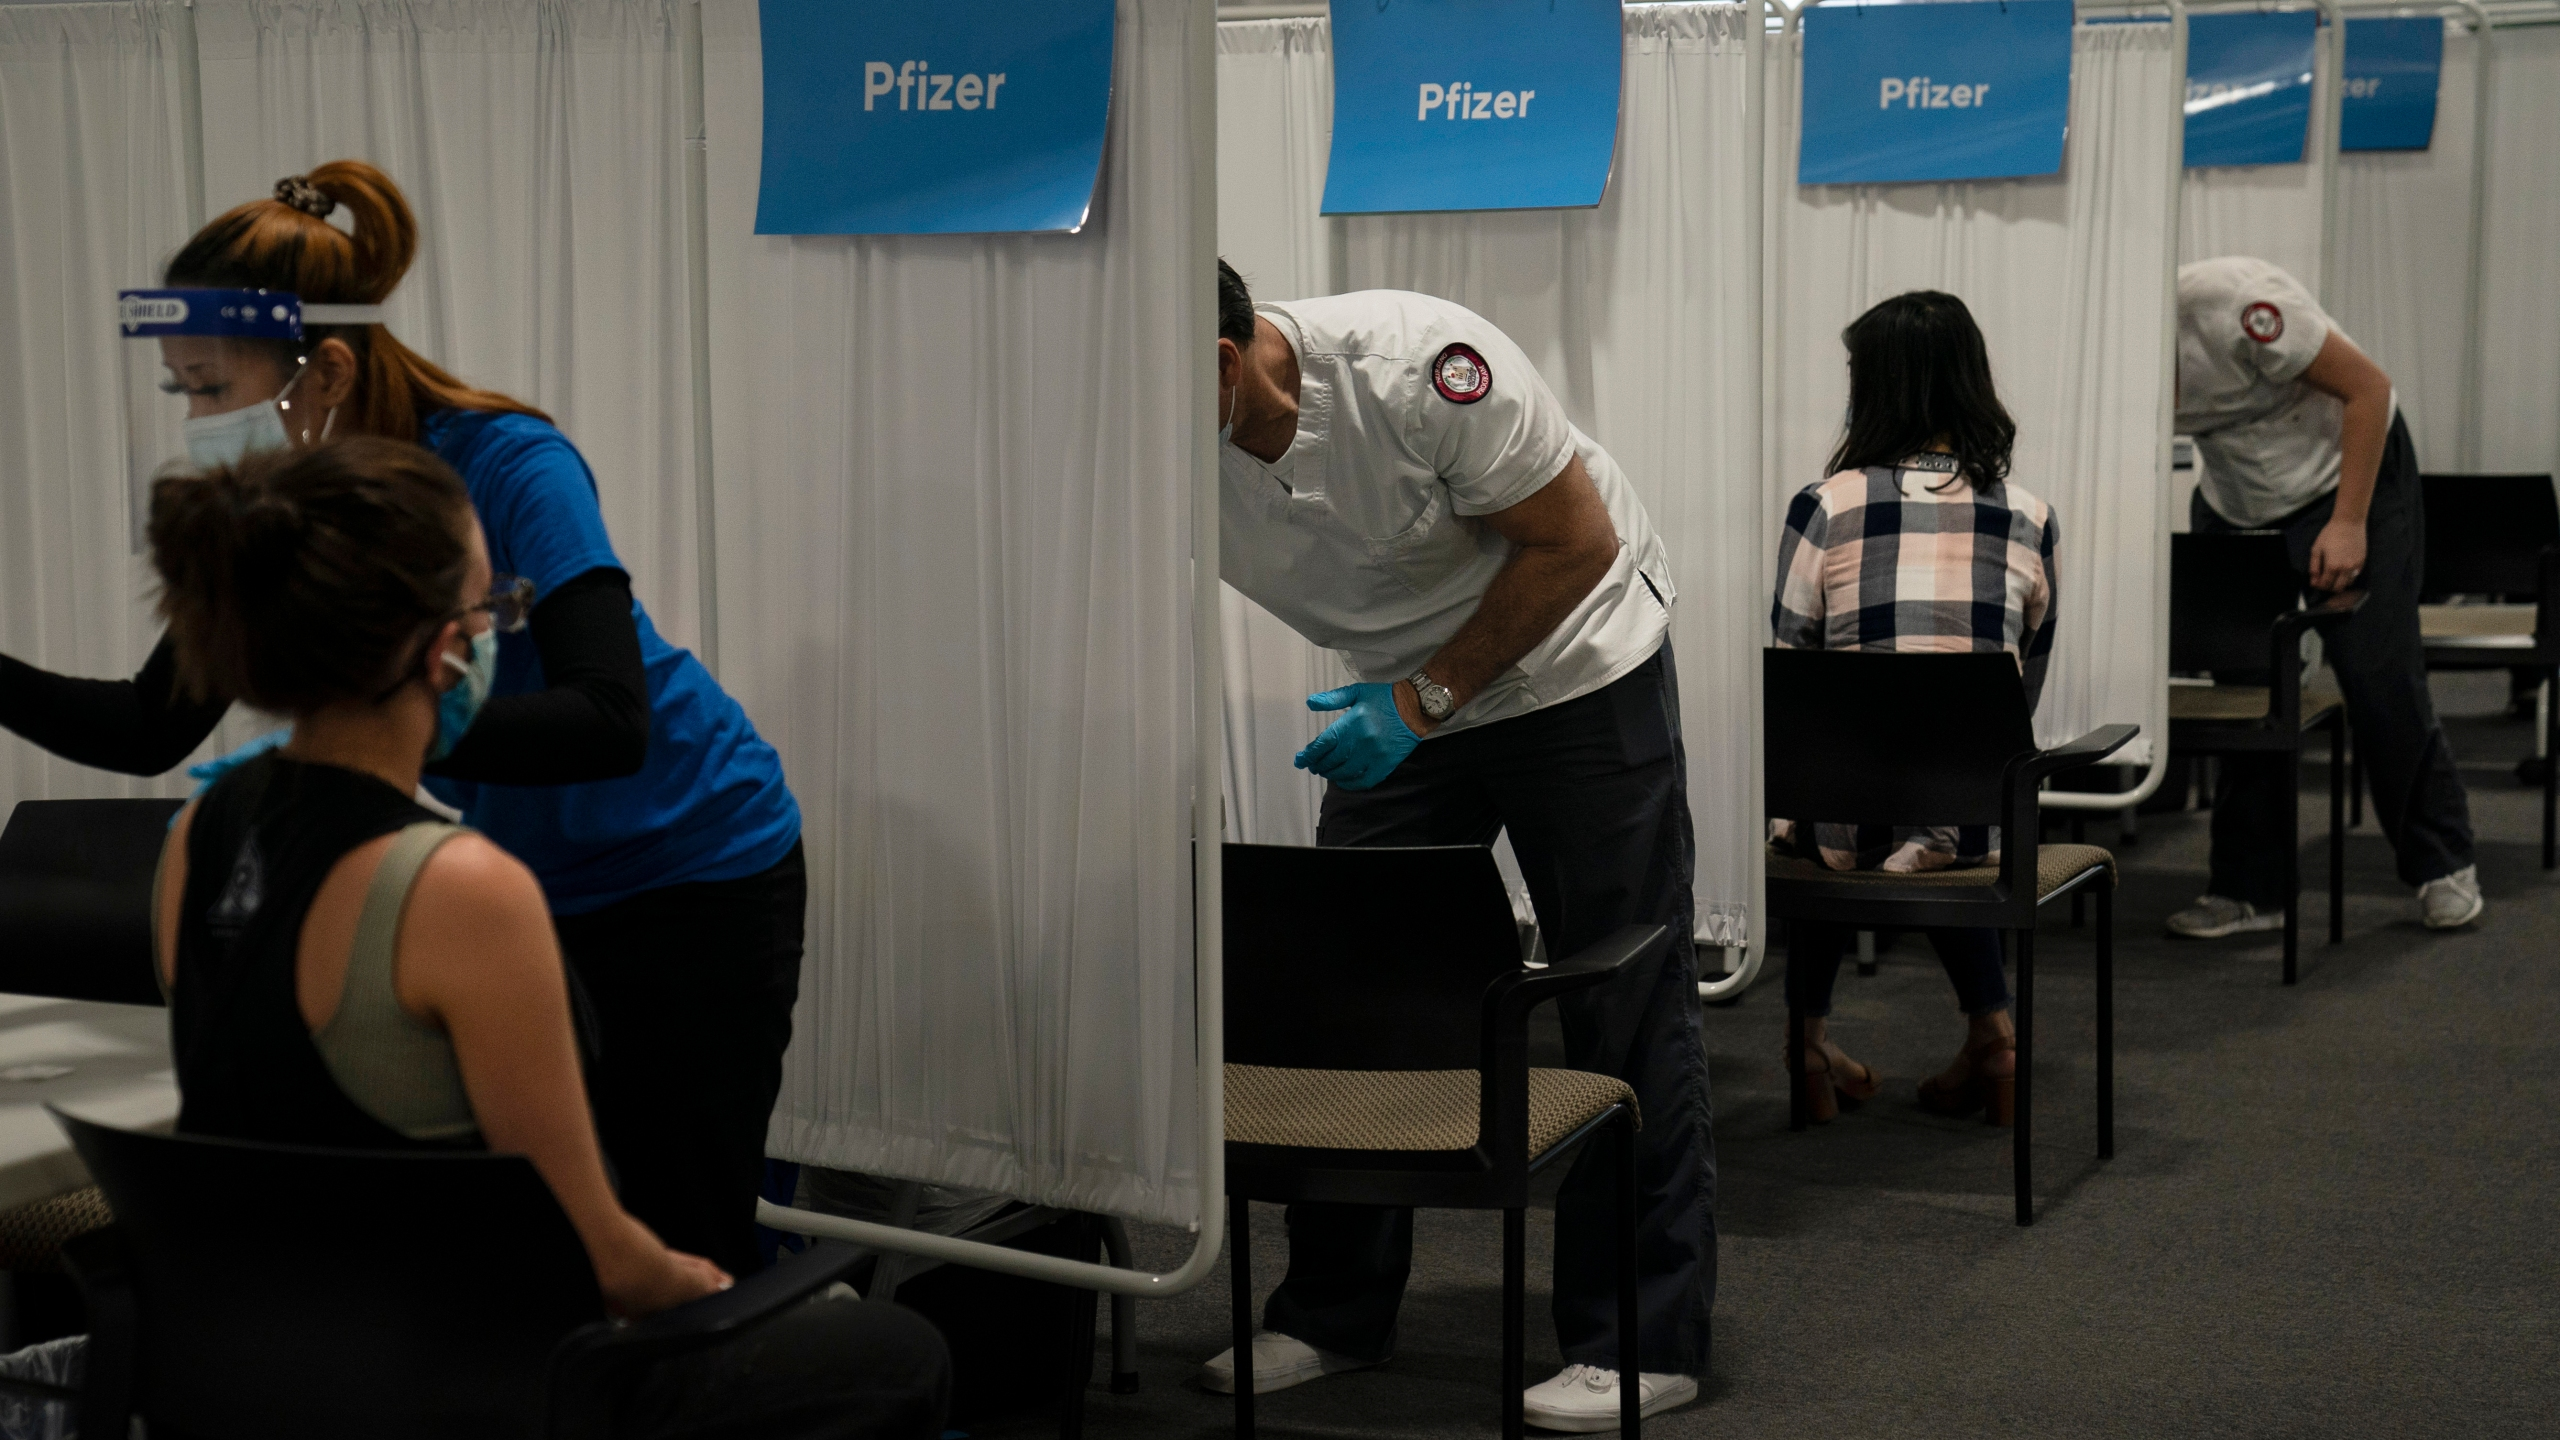 Student nurse Dario Gomez, center, disinfects a chair after administering the Pfizer COVID-19 vaccine to a patient at Providence Edwards Lifesciences vaccination site in Santa Ana on May 21, 2021. (Jae C. Hong/Associated Press)